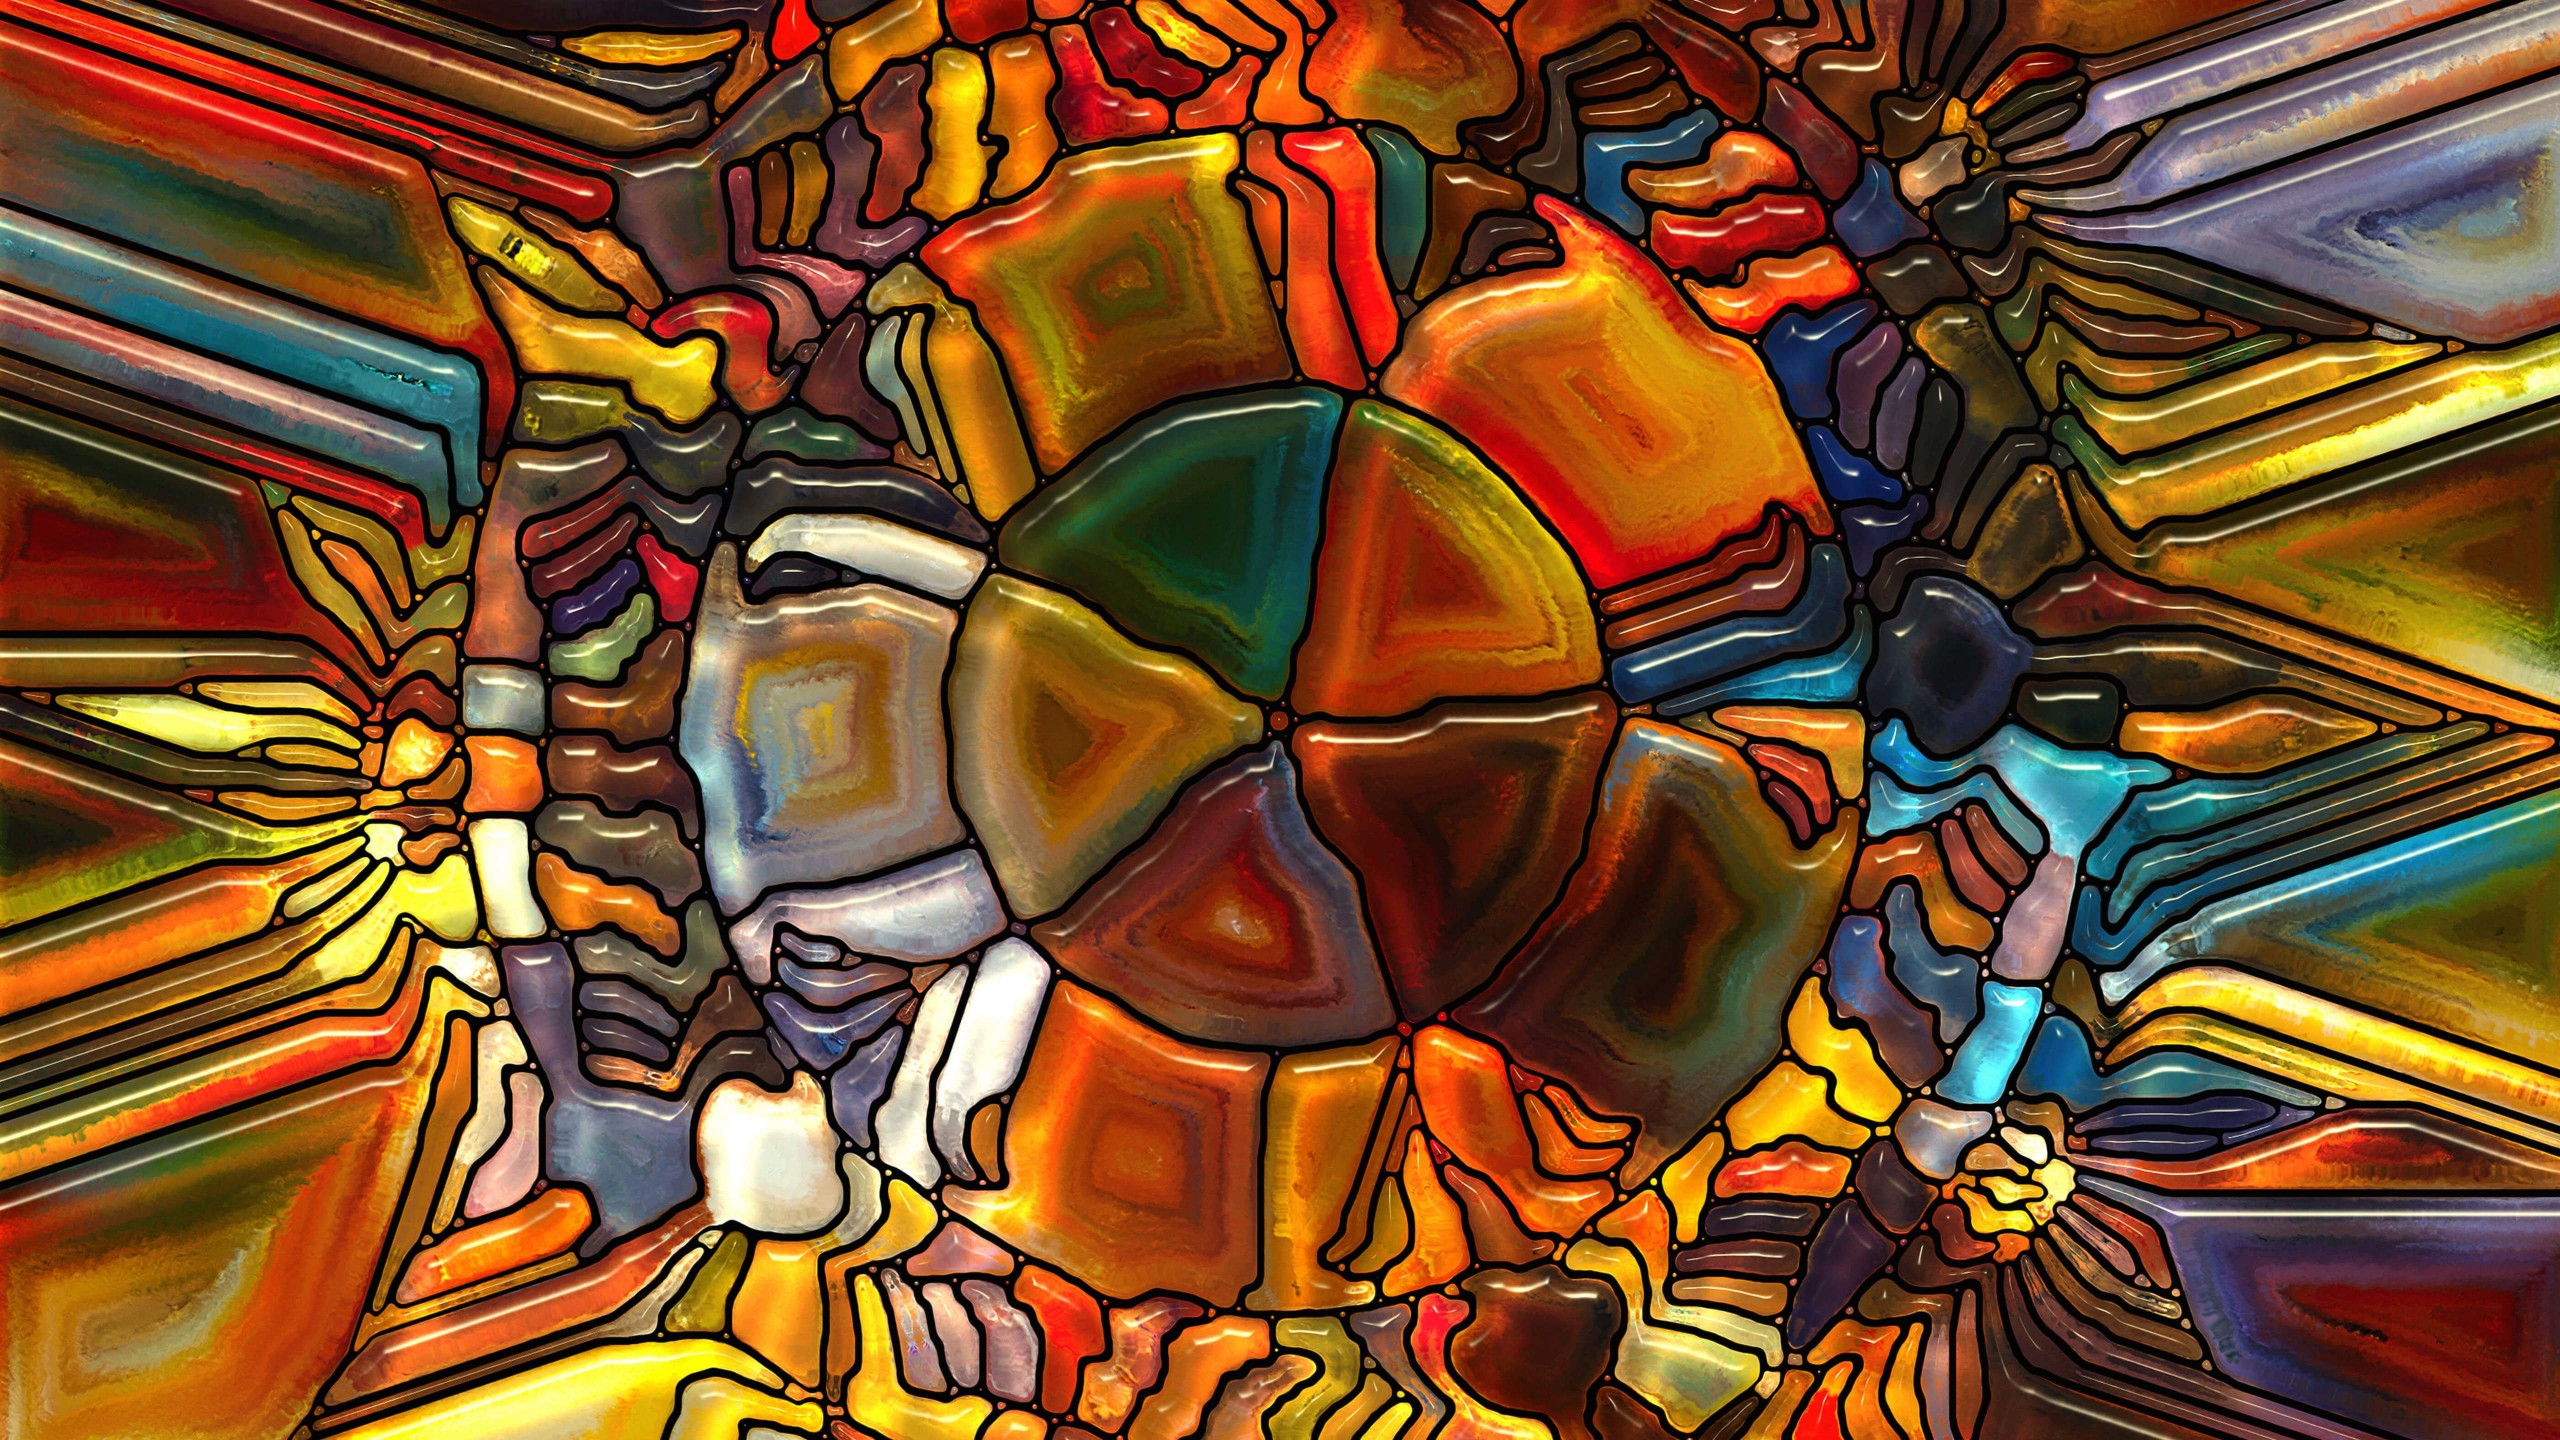 Psychedelic Stained Glass Wallpaper for Desktop 2560x1440